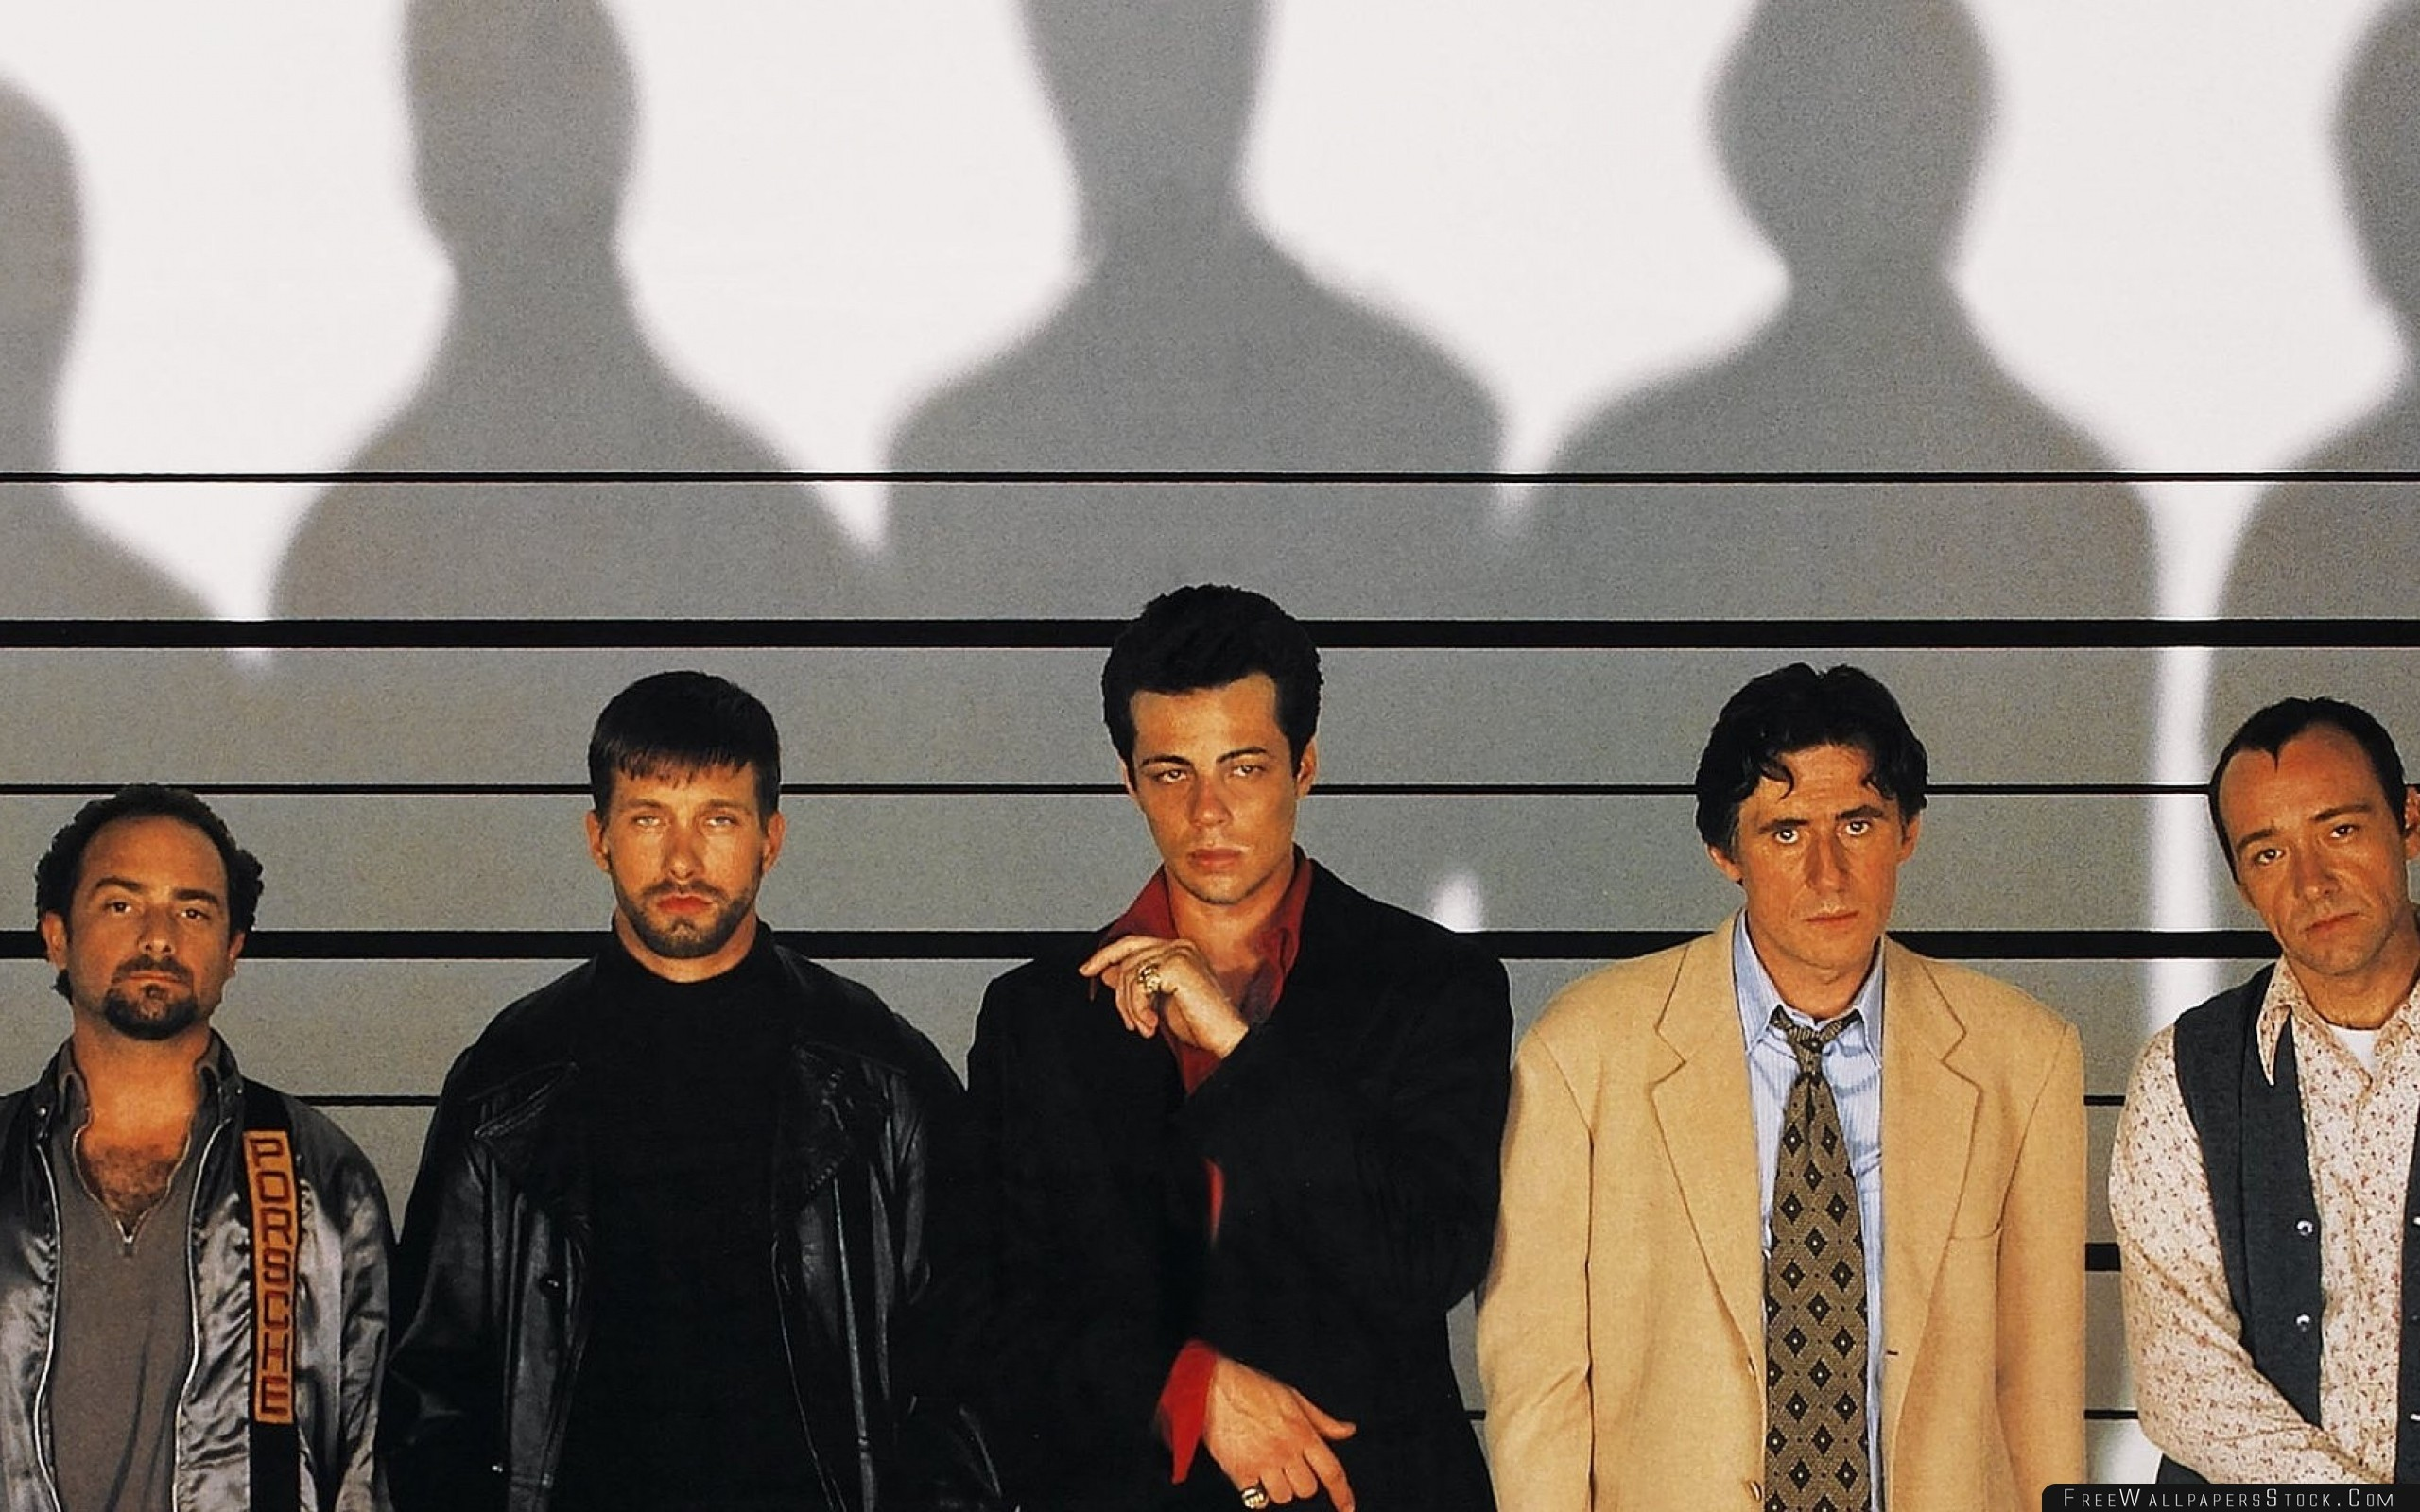 Download Free Wallpaper Usual Suspects Faces Mans People